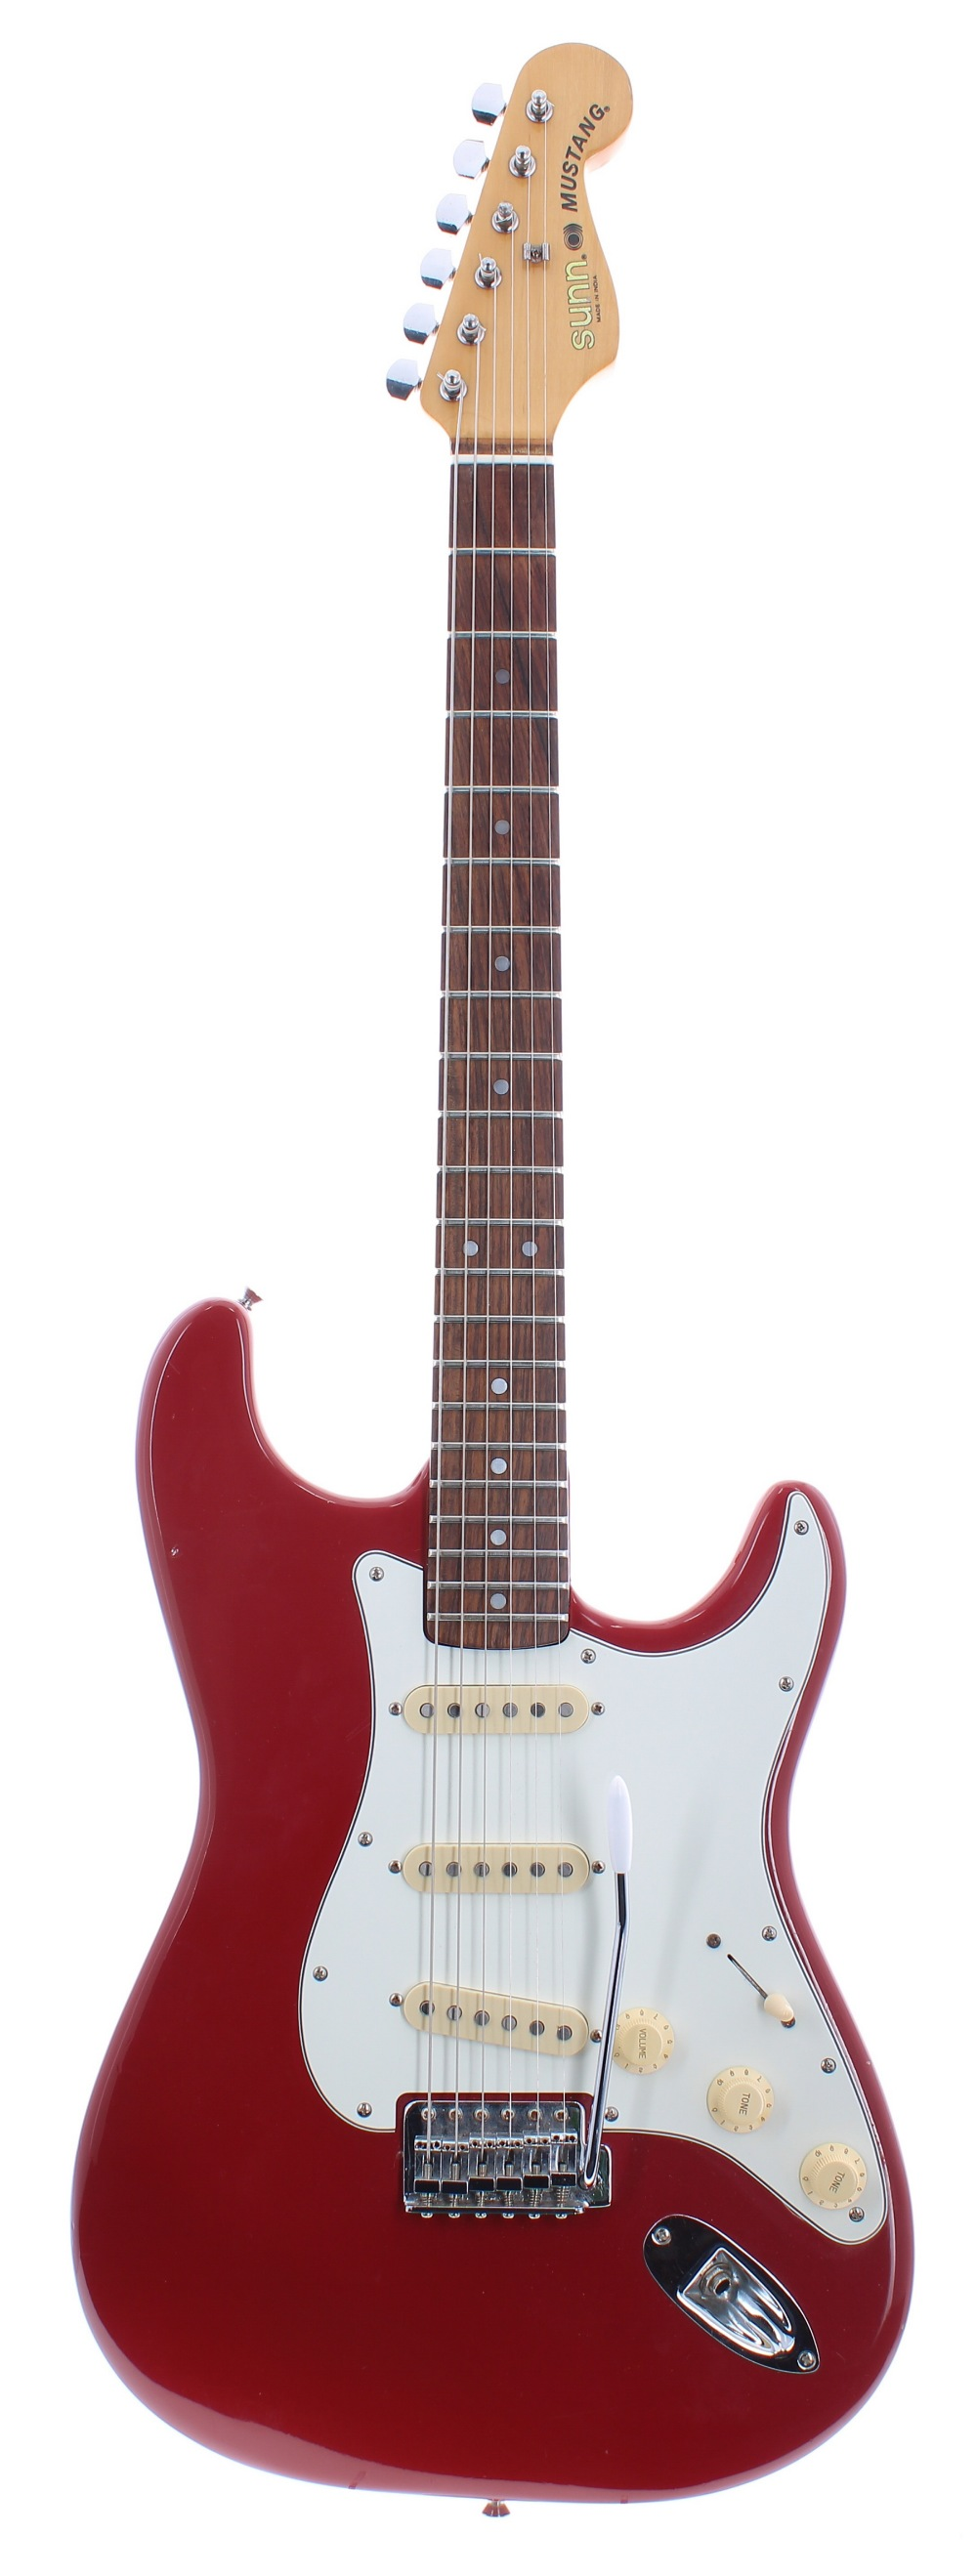 Sunn Mustang electric guitar, made in India; Finish: red, various dings and marks; Fretboard: